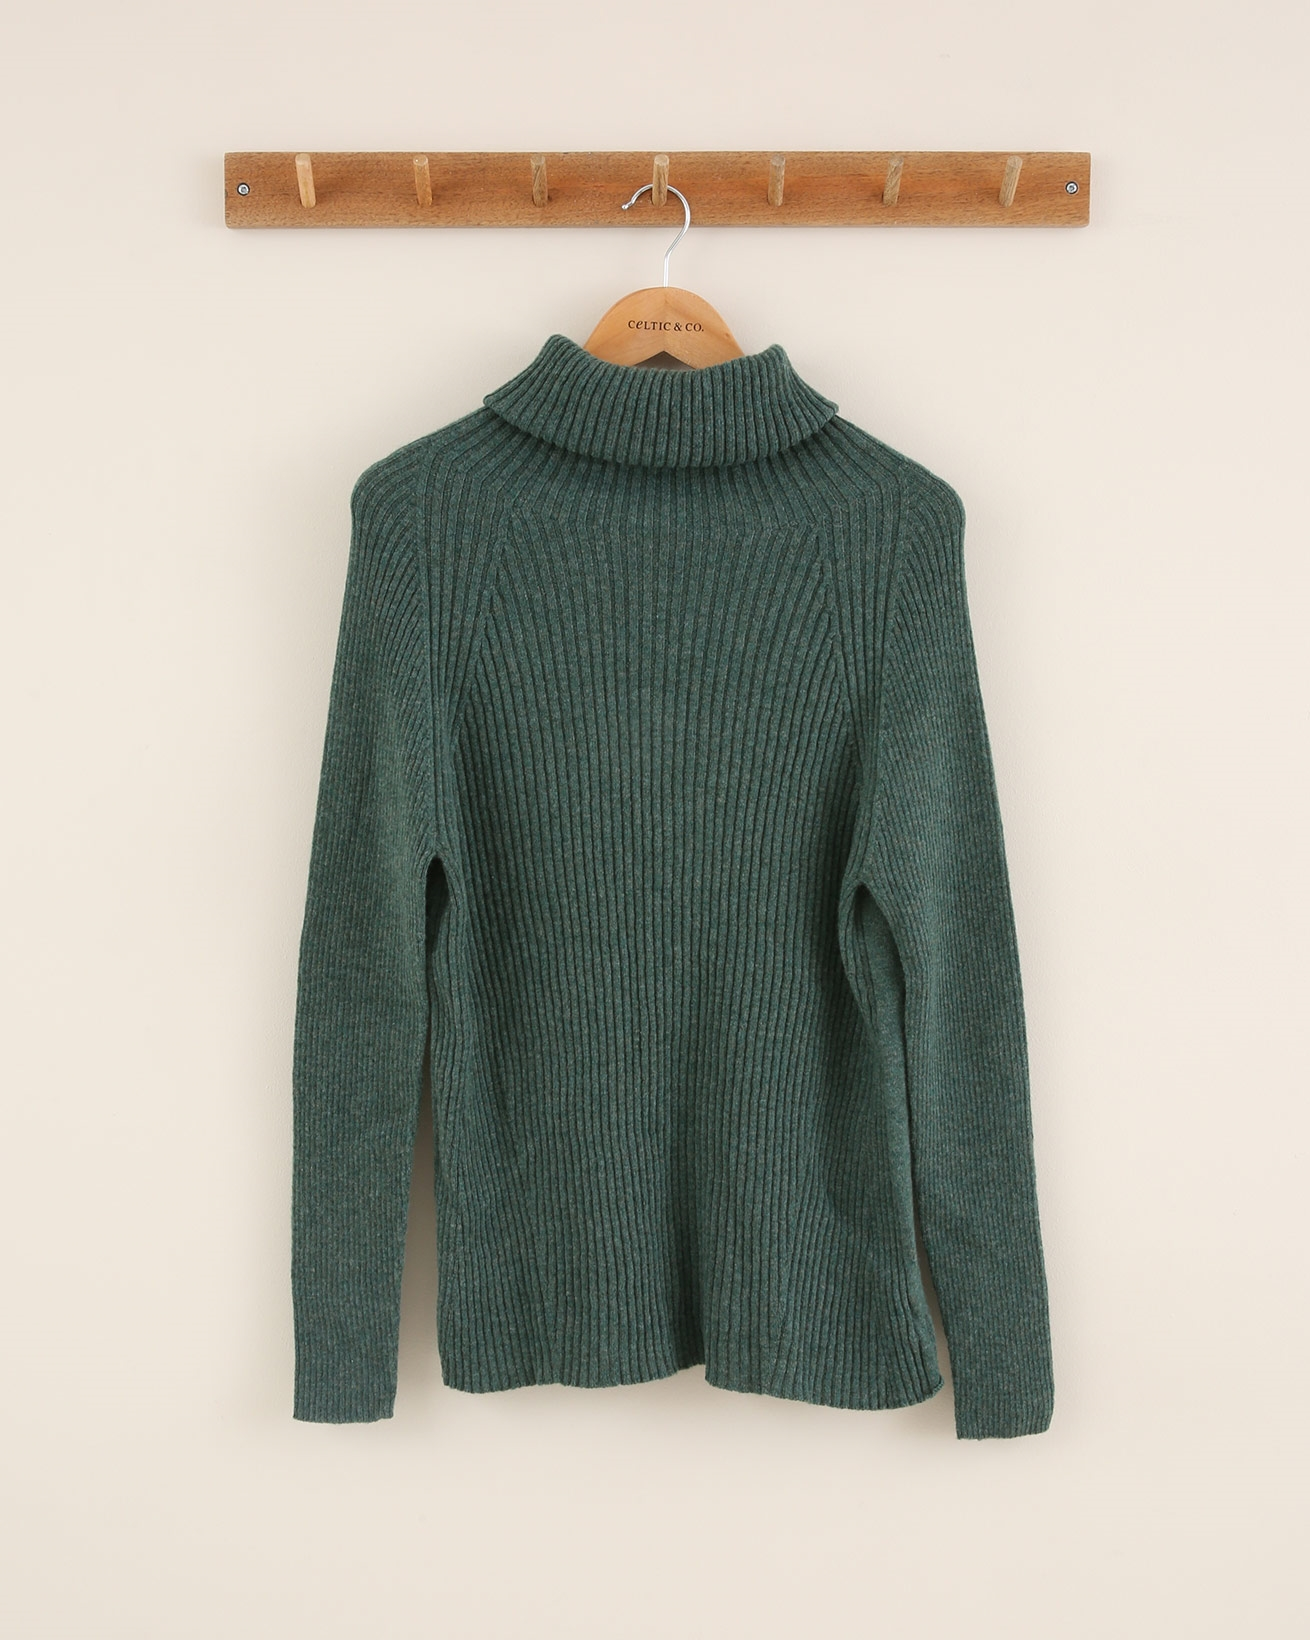 Ribbed Geelong Roll Neck - Size Small - Pine Green - 1840